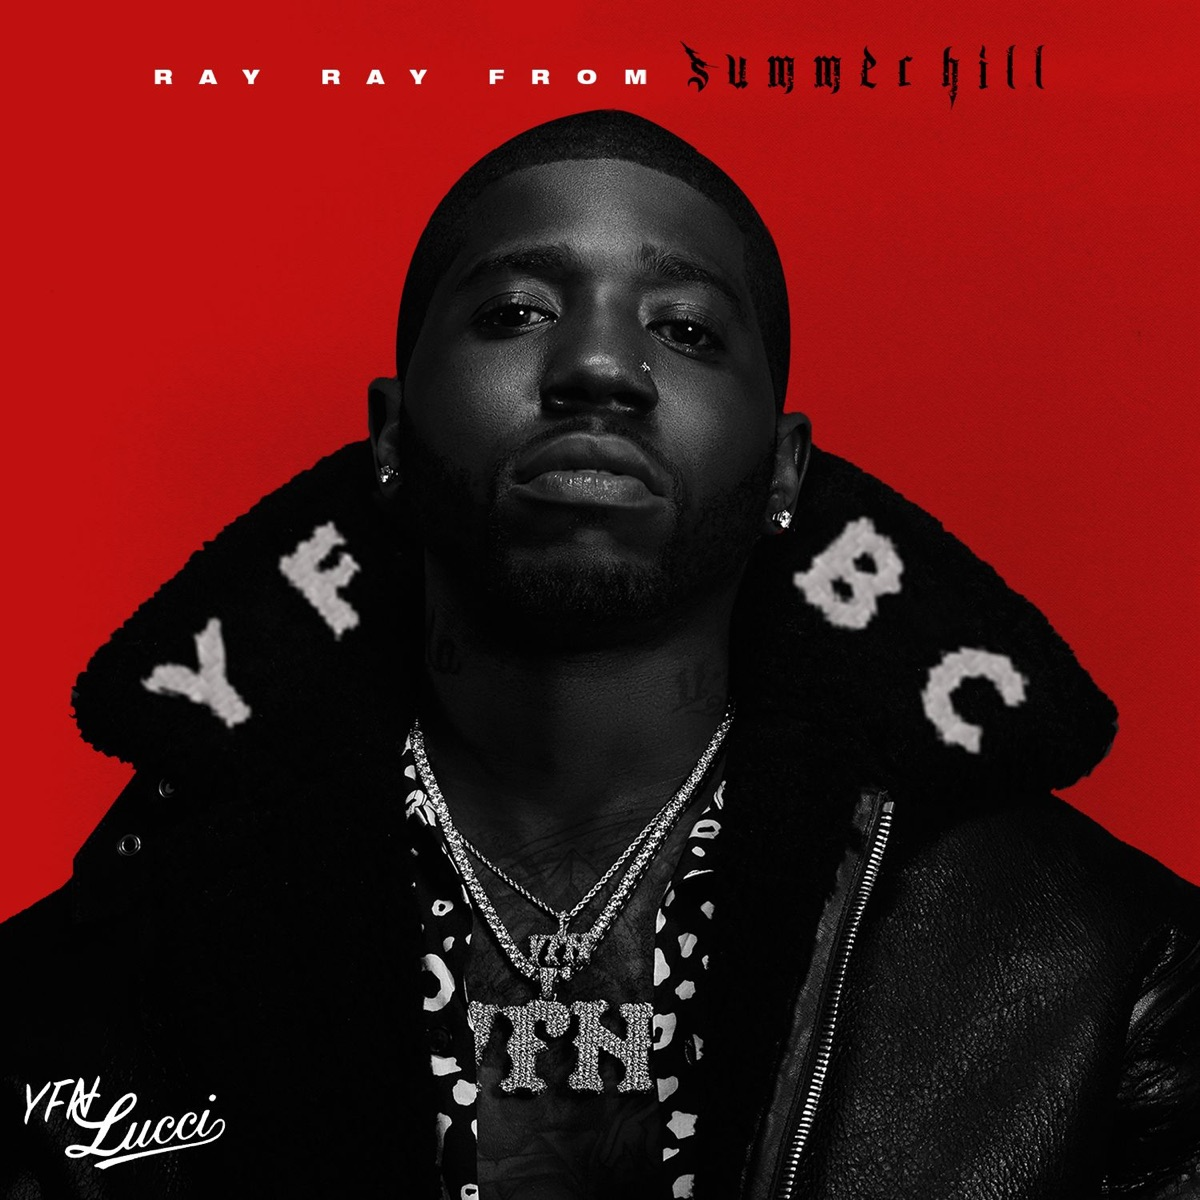 Ray Ray from Summerhill YFN Lucci CD cover